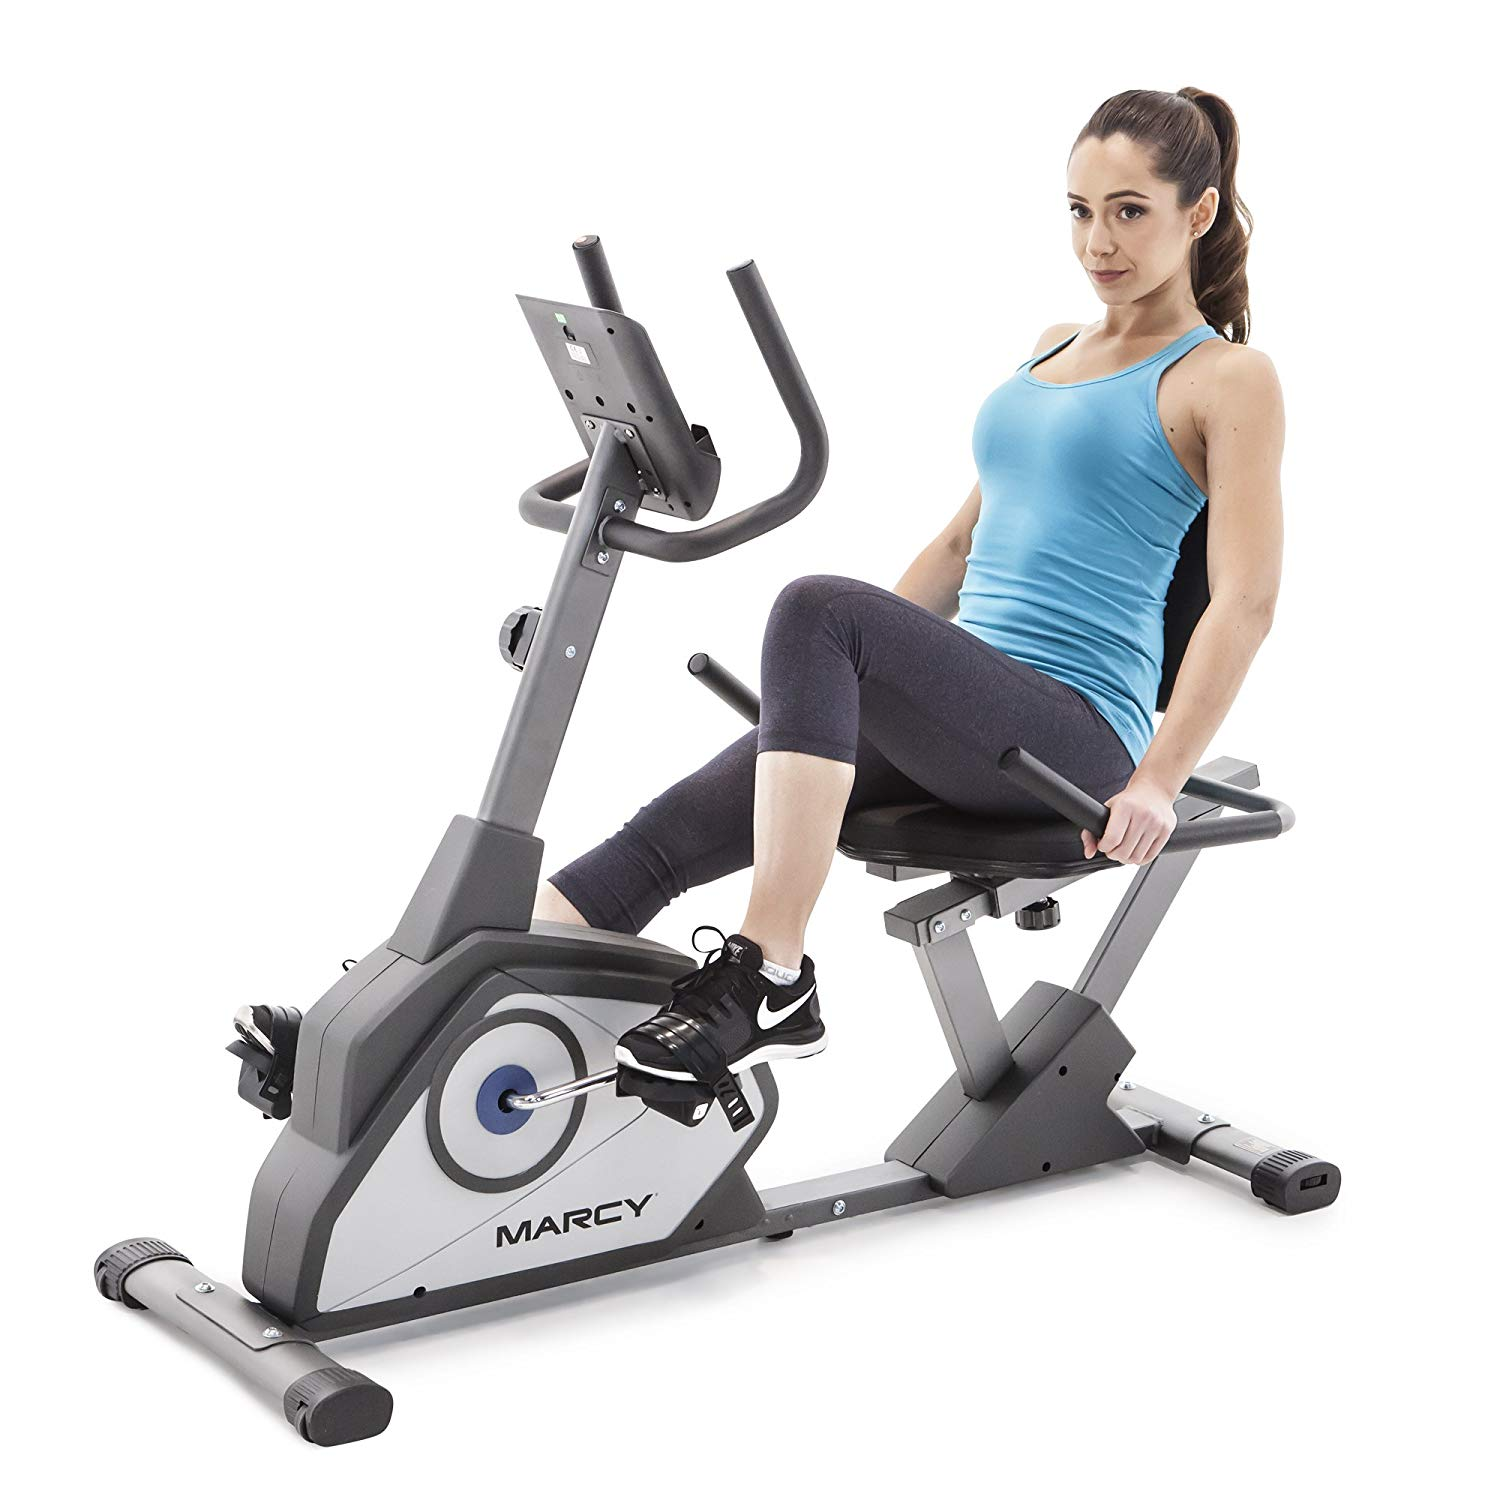 Marcy Magnetic Recumbent Exercise Bike | Home Gym Machine